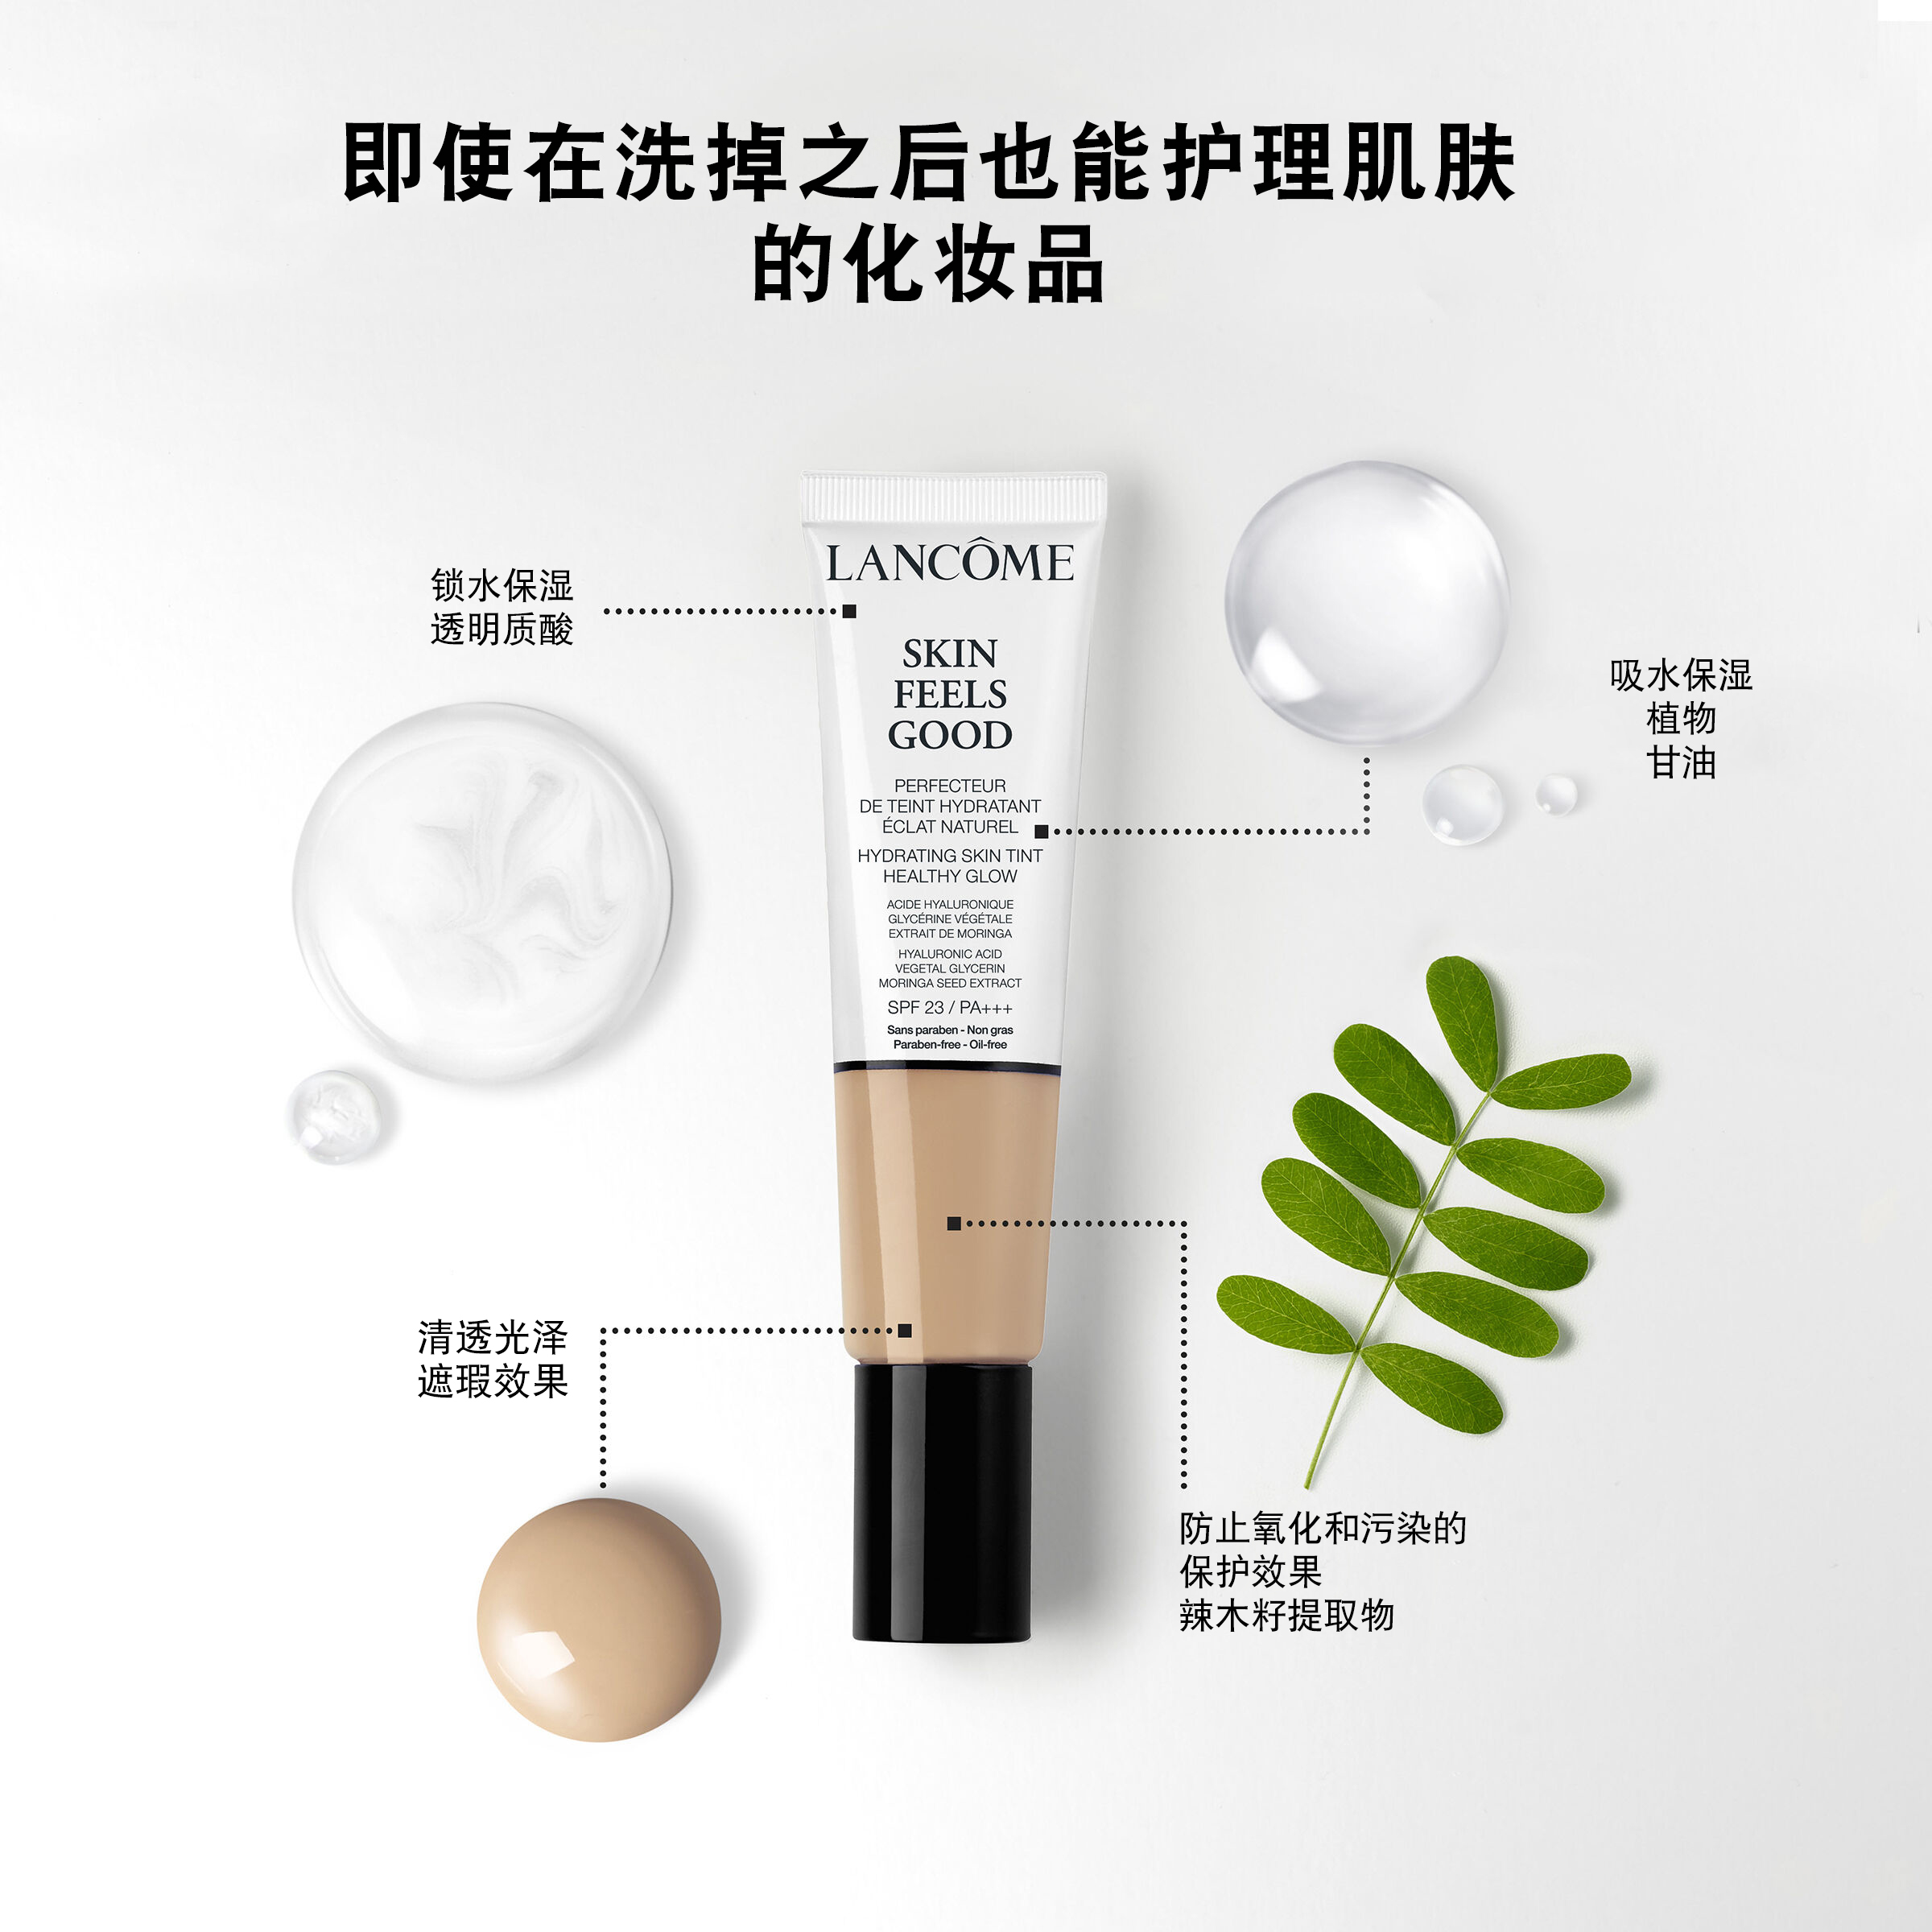 Skin Feels Good Skin Nourishing Foundation(兰蔻畅爽肌肤保湿粉底液)